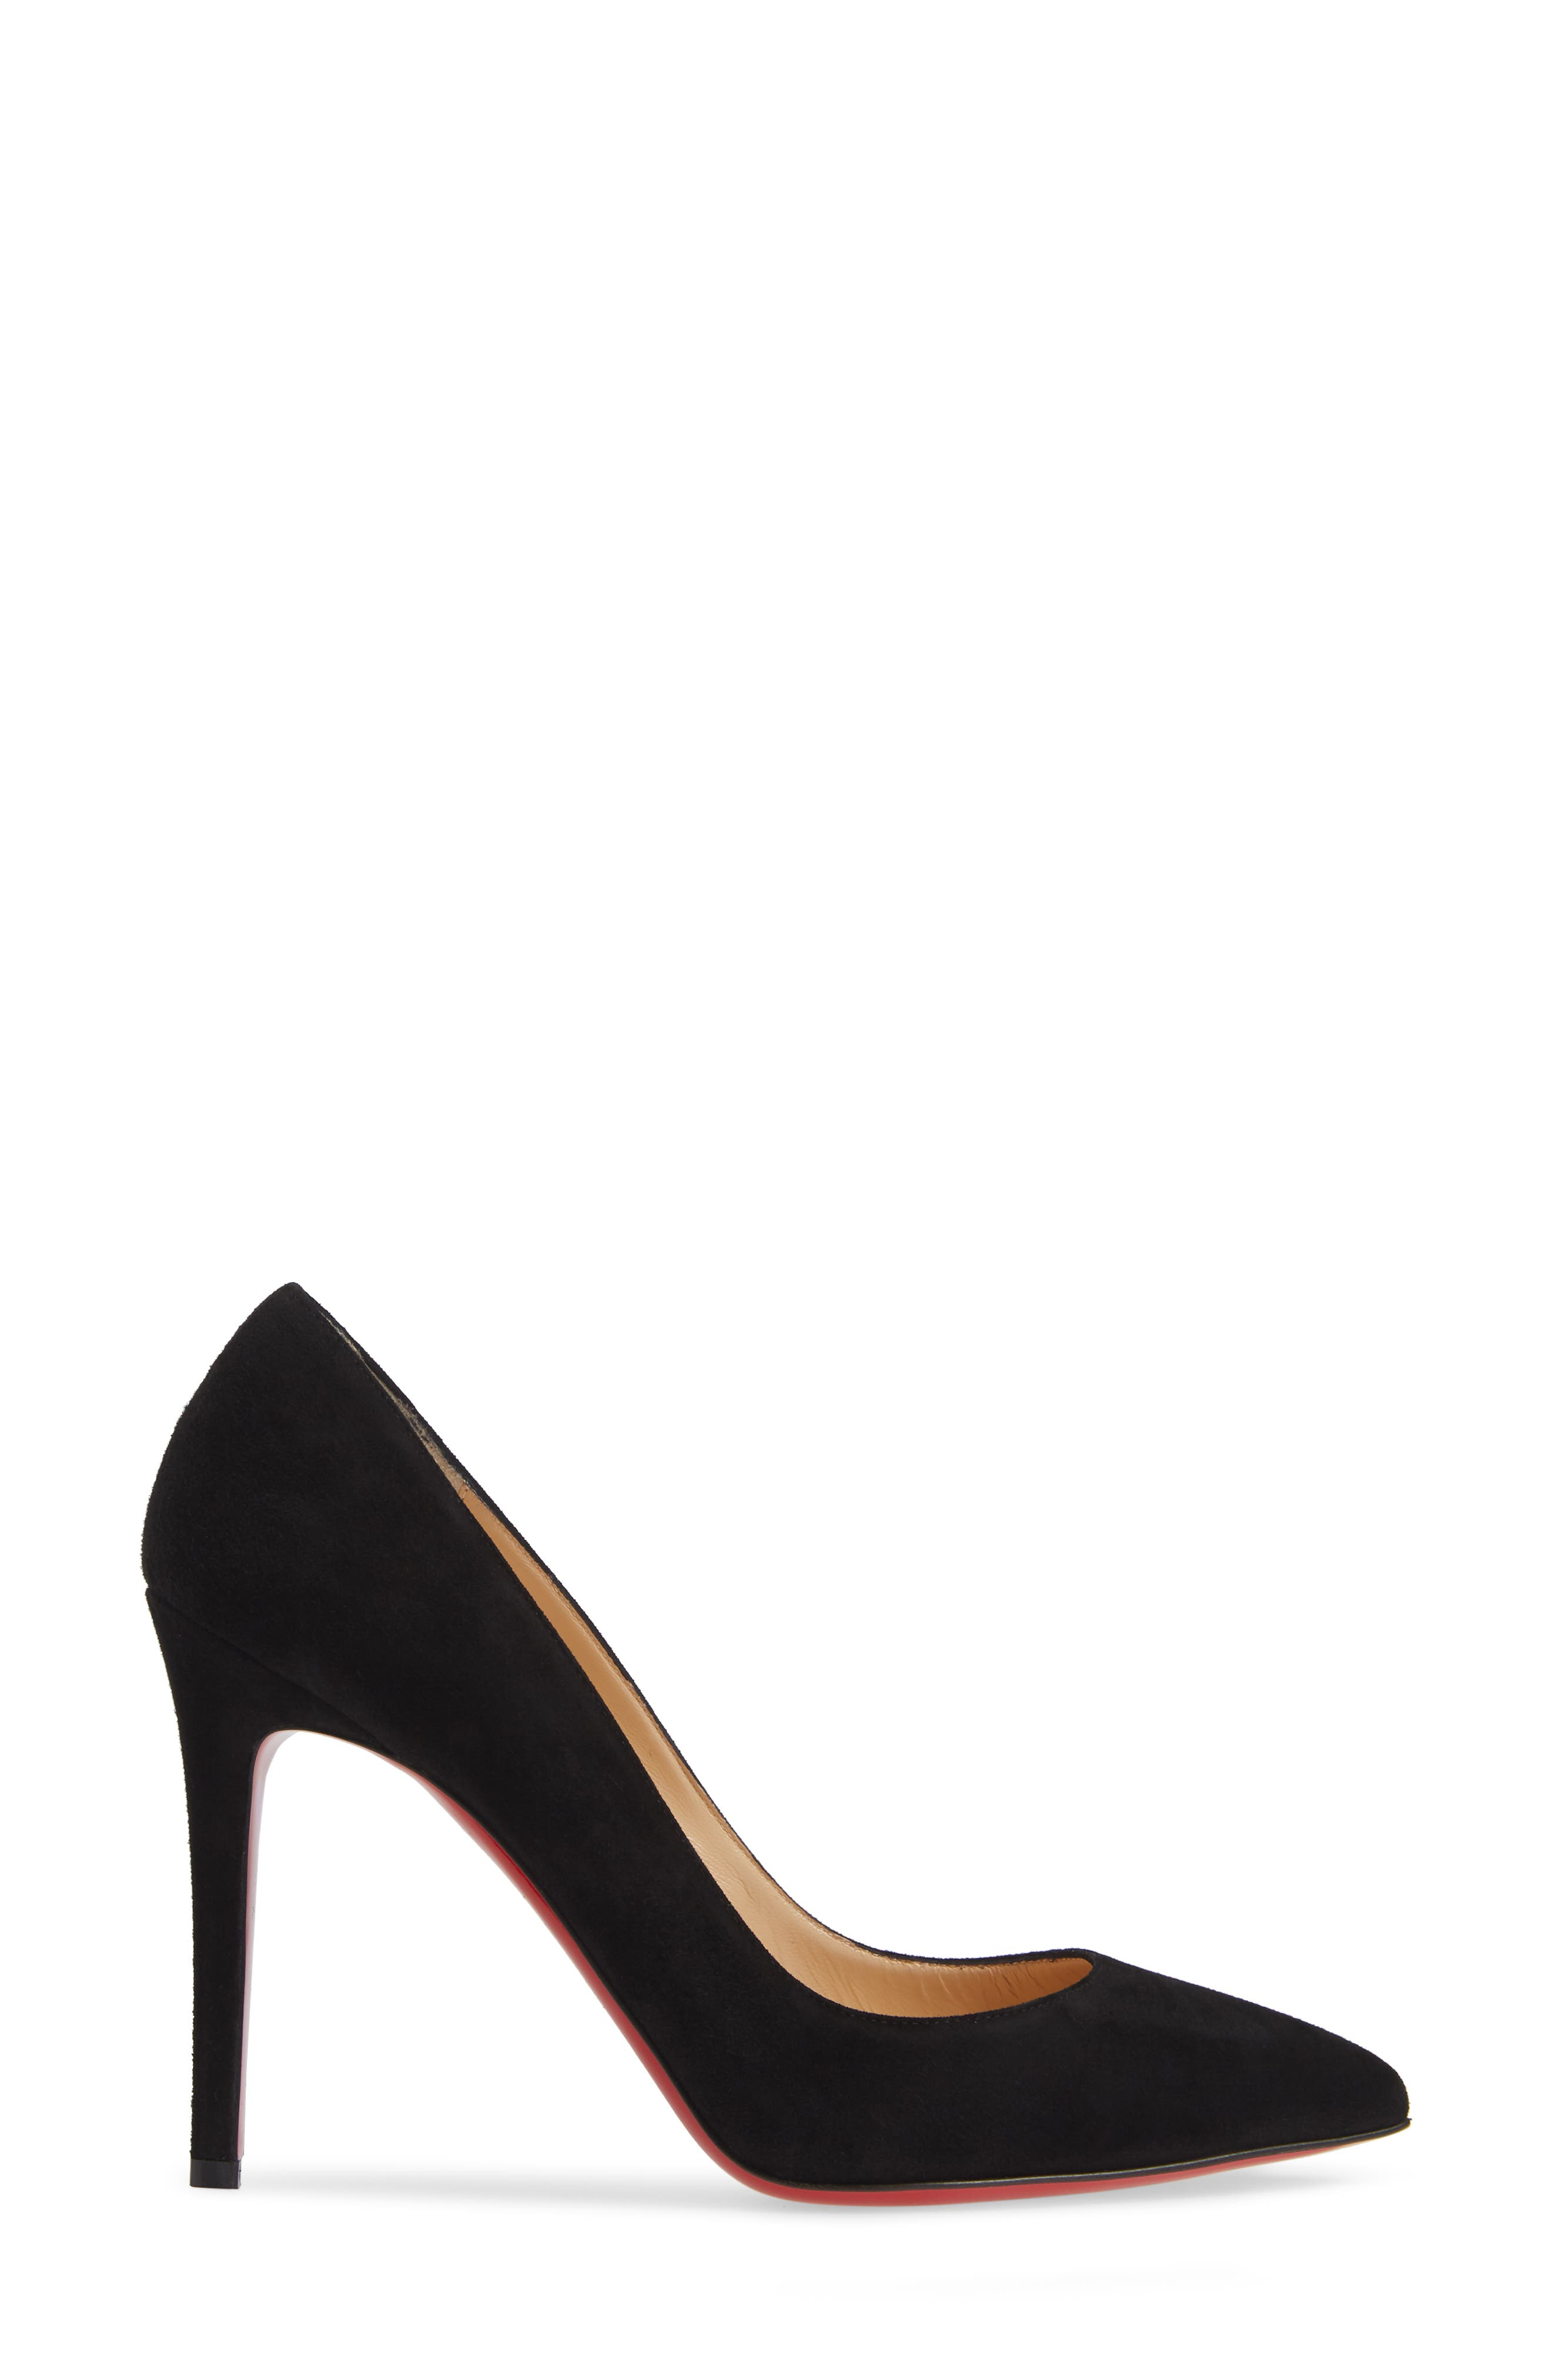 CHRISTIAN LOUBOUTIN,                             Pigalle Pointy Toe Pump,                             Alternate thumbnail 3, color,                             BLACK SUEDE